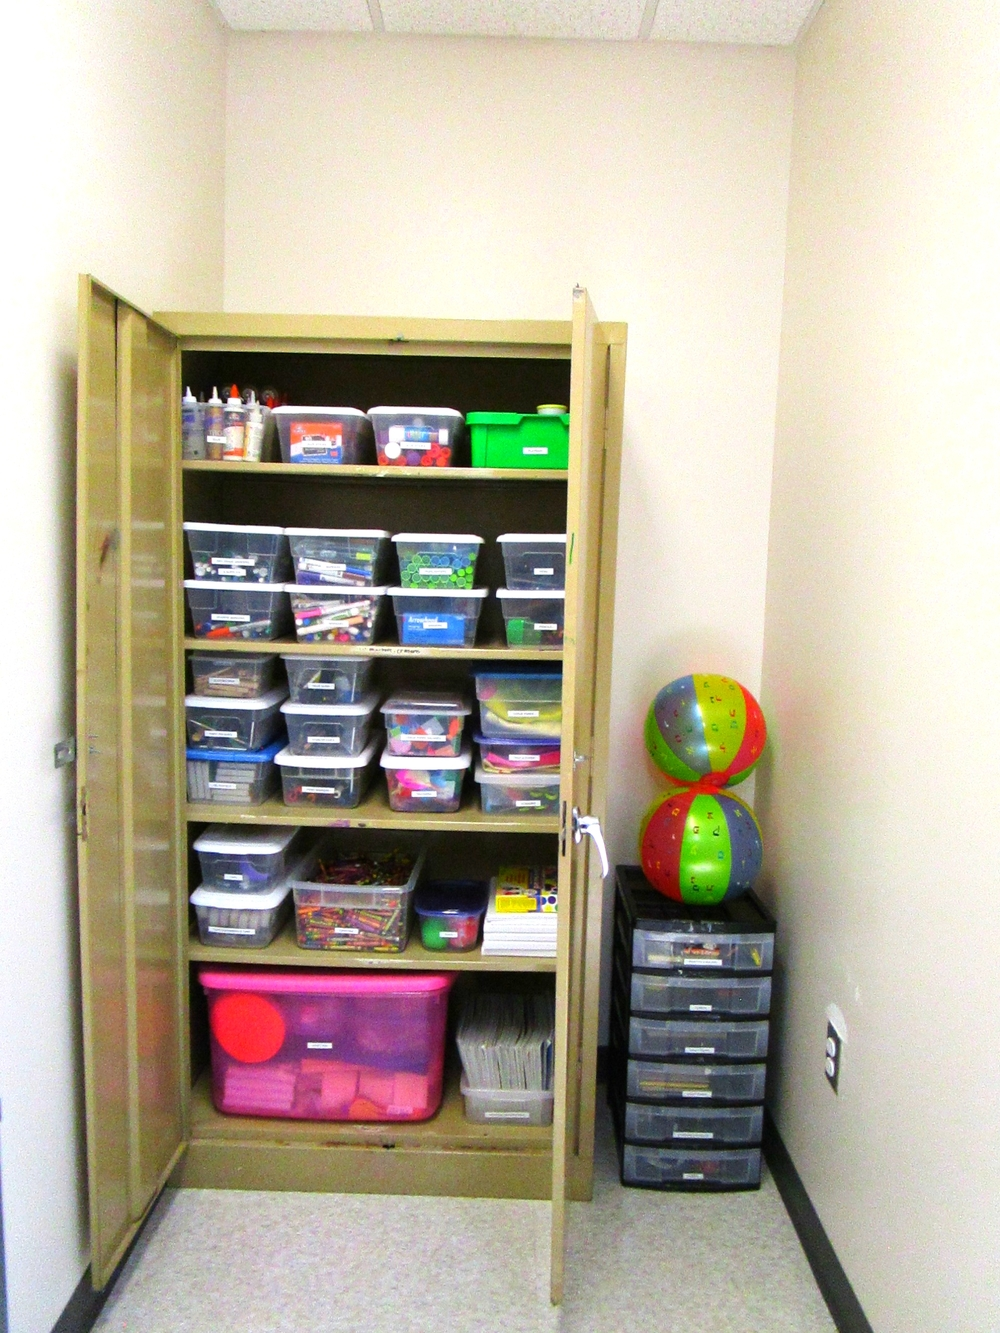 Supply Closet After